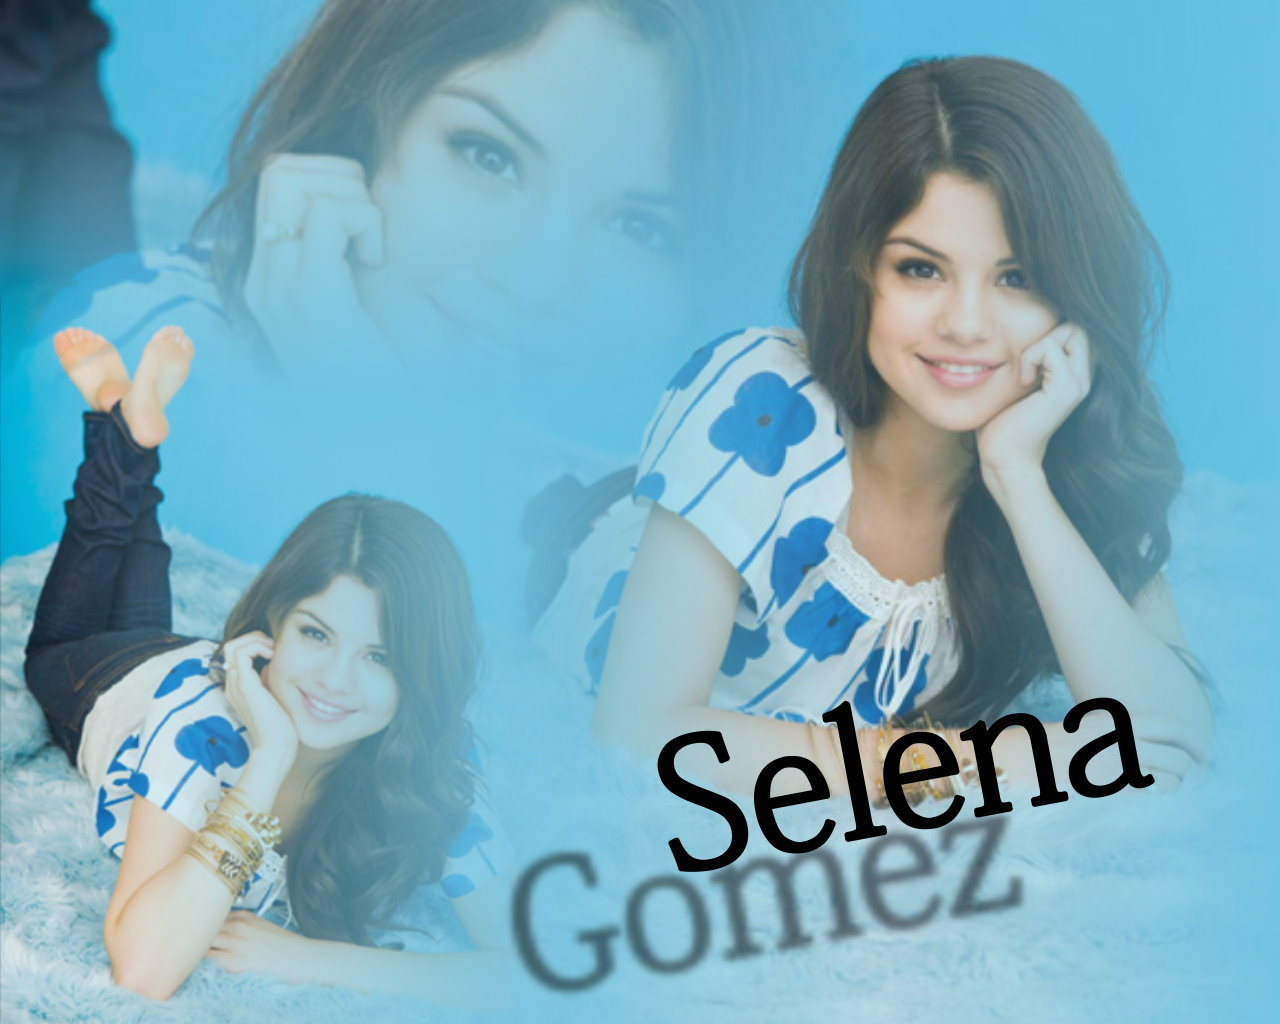 http://images2.fanpop.com/images/photos/6700000/selena-gomez-wallpaper-selena-gomez-6770520-1280-1024.jpg